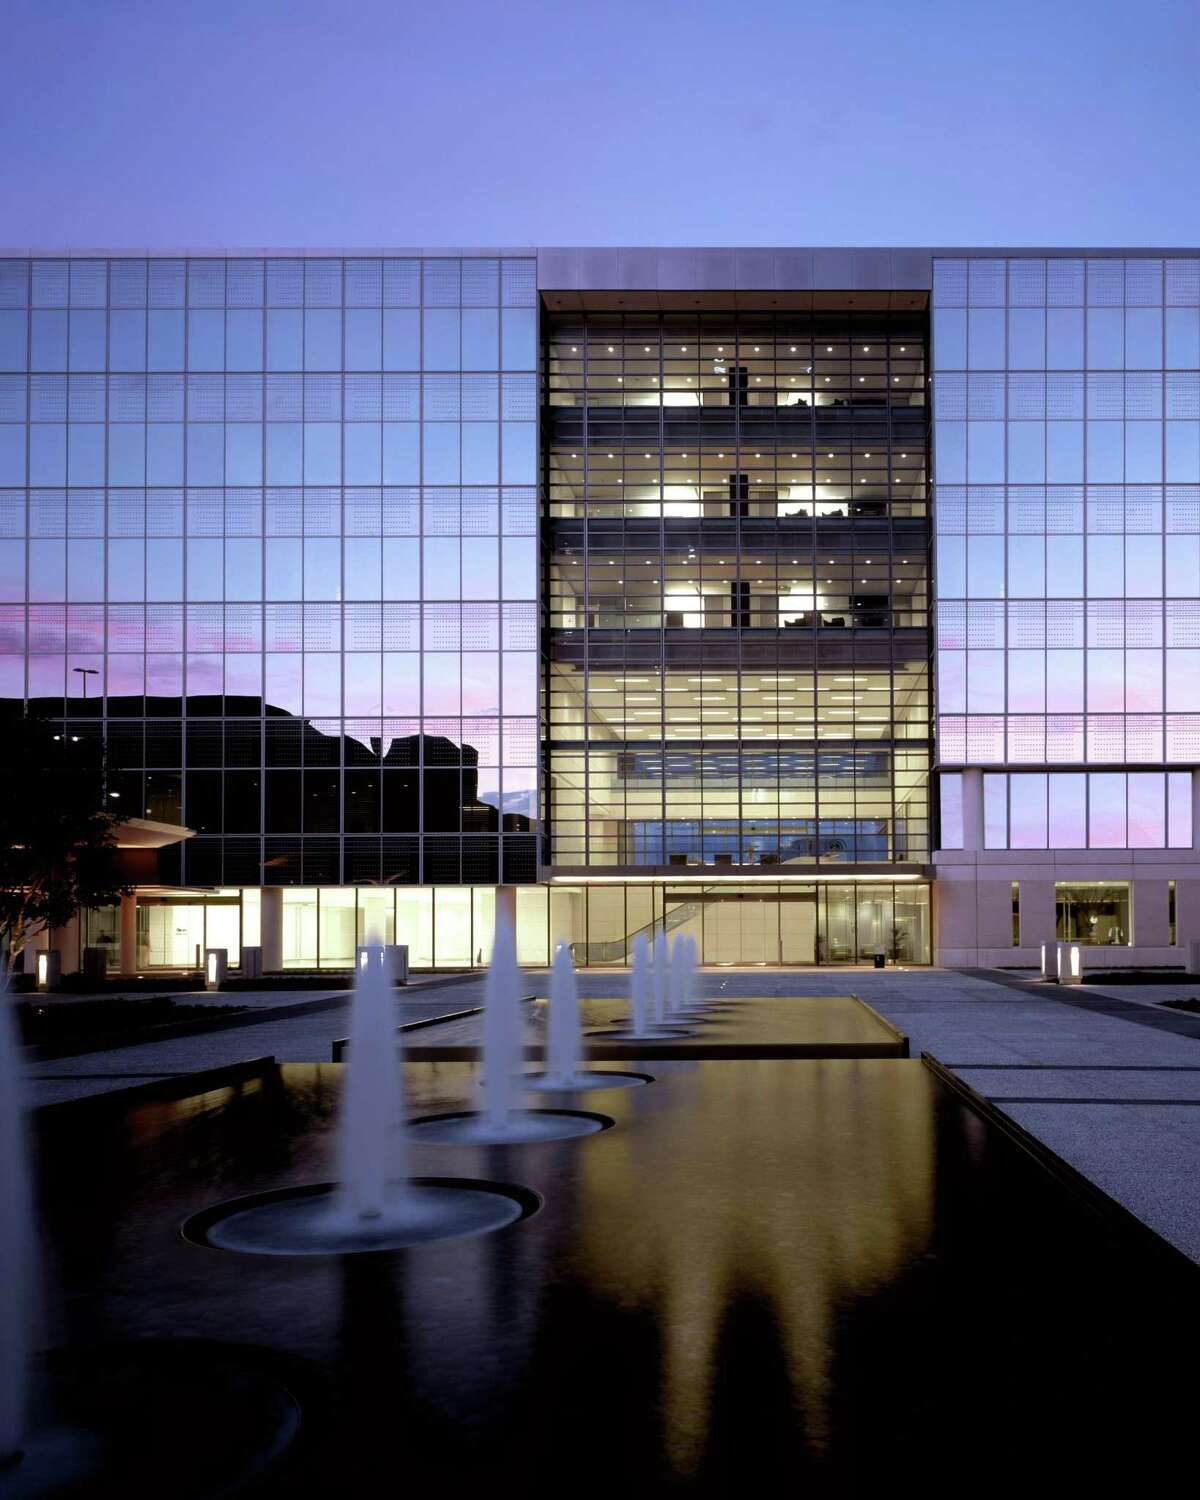 Honeywell has leased 114,068 square at CityWestPlace Building 1 in Westchase for its primary Houston base of operations of its Honeywell Process Solutions business. The four building CityWestPlacecampus is operated by Parkway Property Investments.